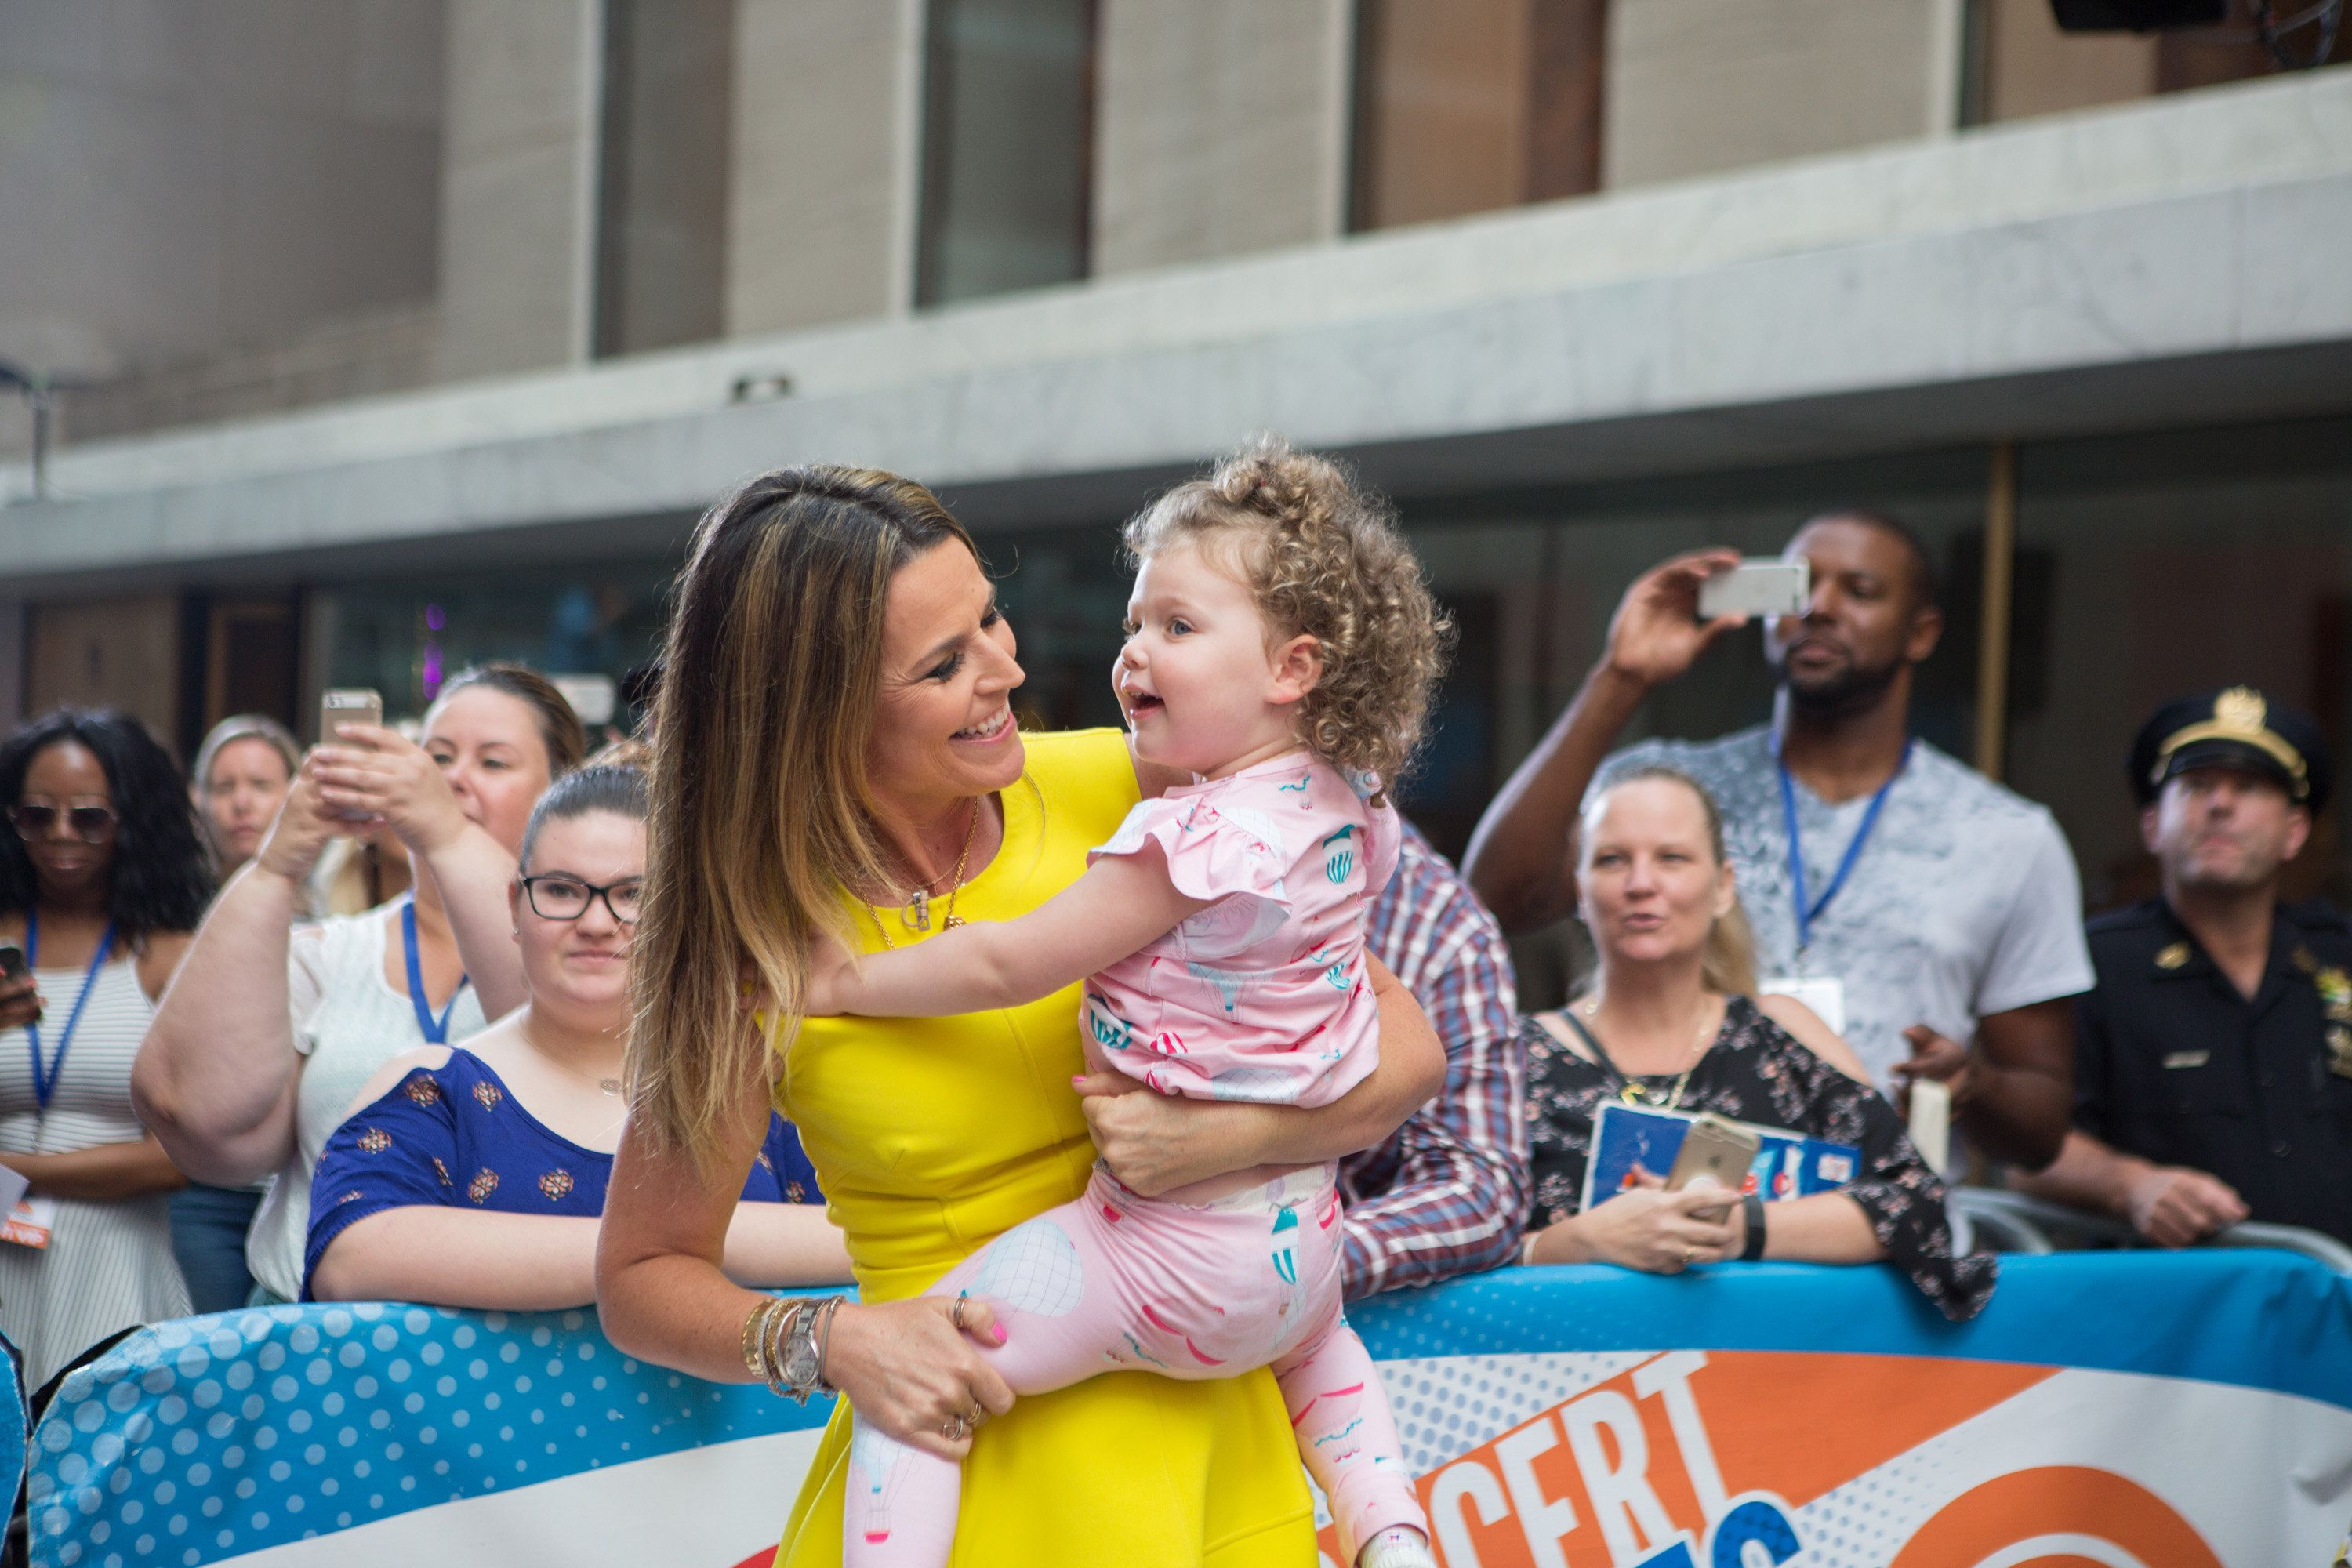 TODAY -- Pictured: Savannah Guthrie with daughter Vale on Friday, July 28, 2017 -- (Photo by: Nathan Congleton/NBC/NBCU Photo Bank via Getty Images)